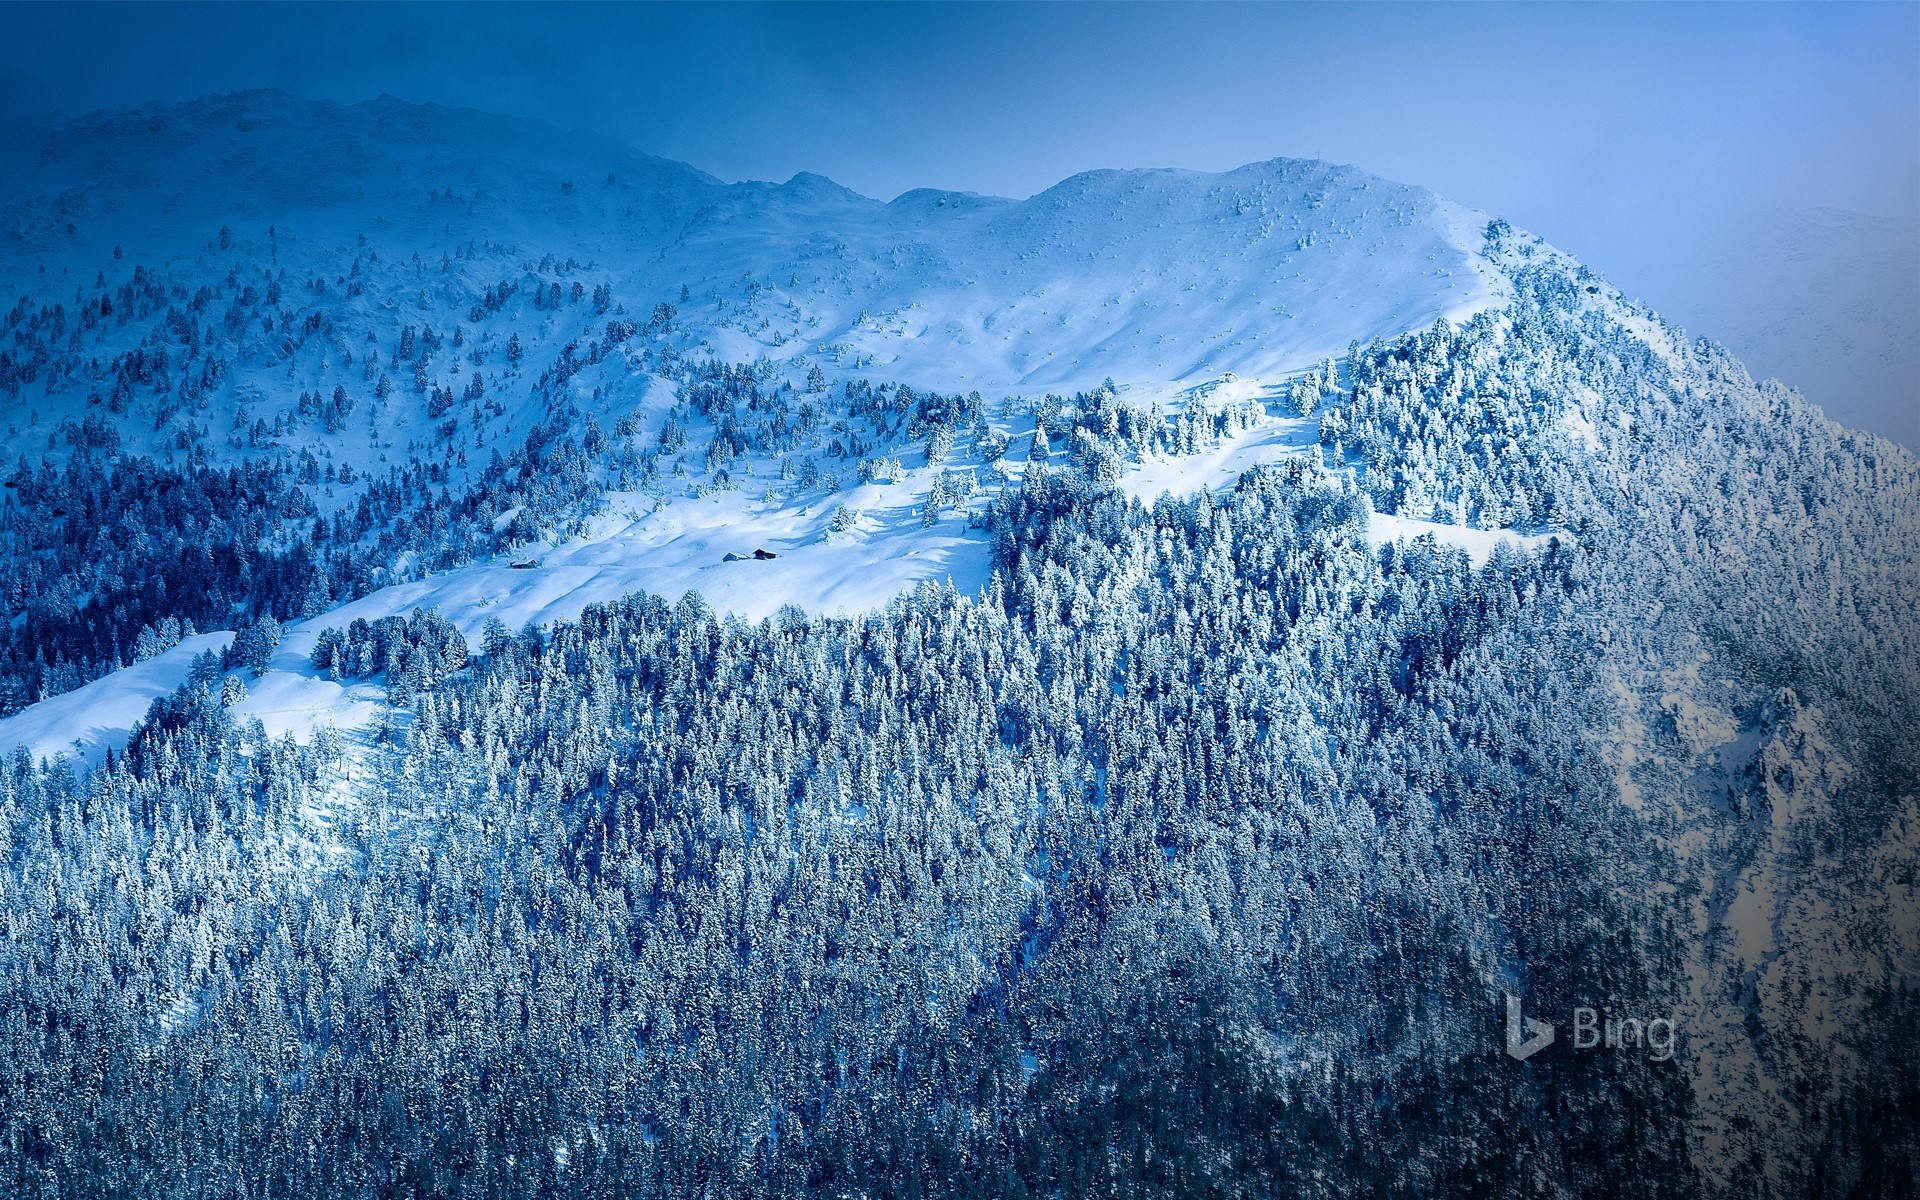 Panorama of the Alps under the snow, France